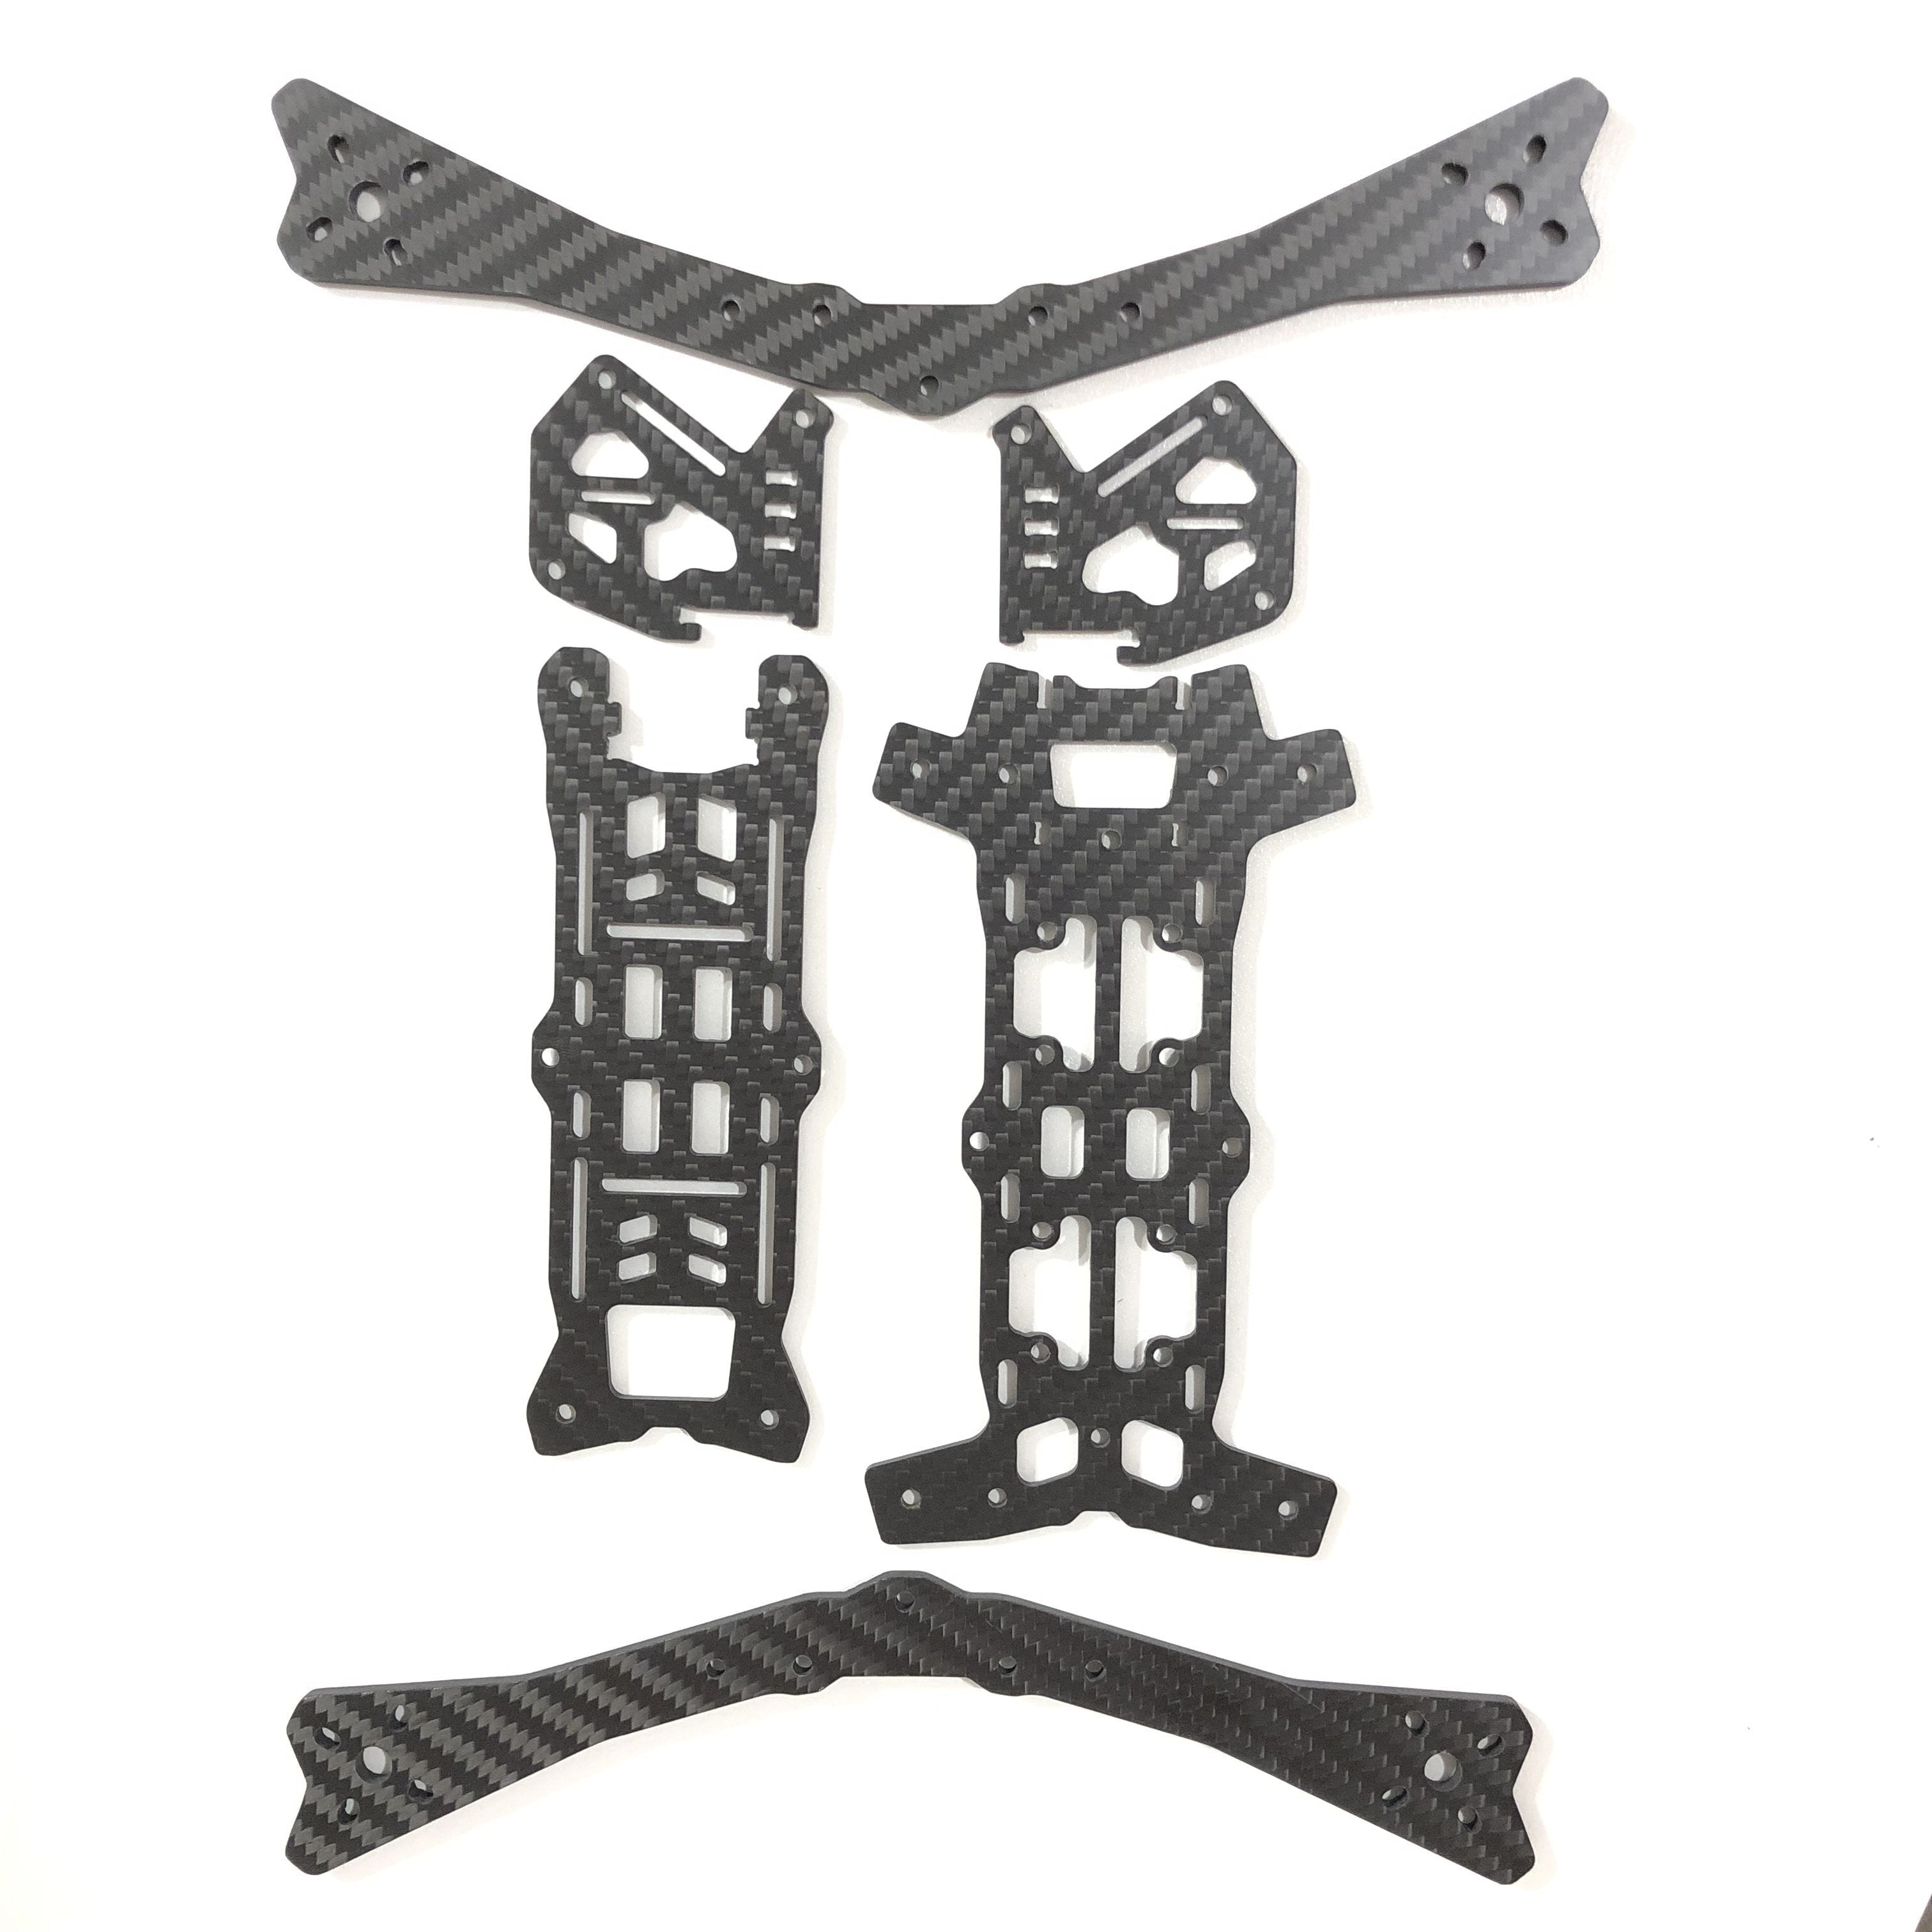 AirBlade Intrepid V2 3K Carbon Fiber Frame Kit - 5 inch and 7 inch AirBlade UAV